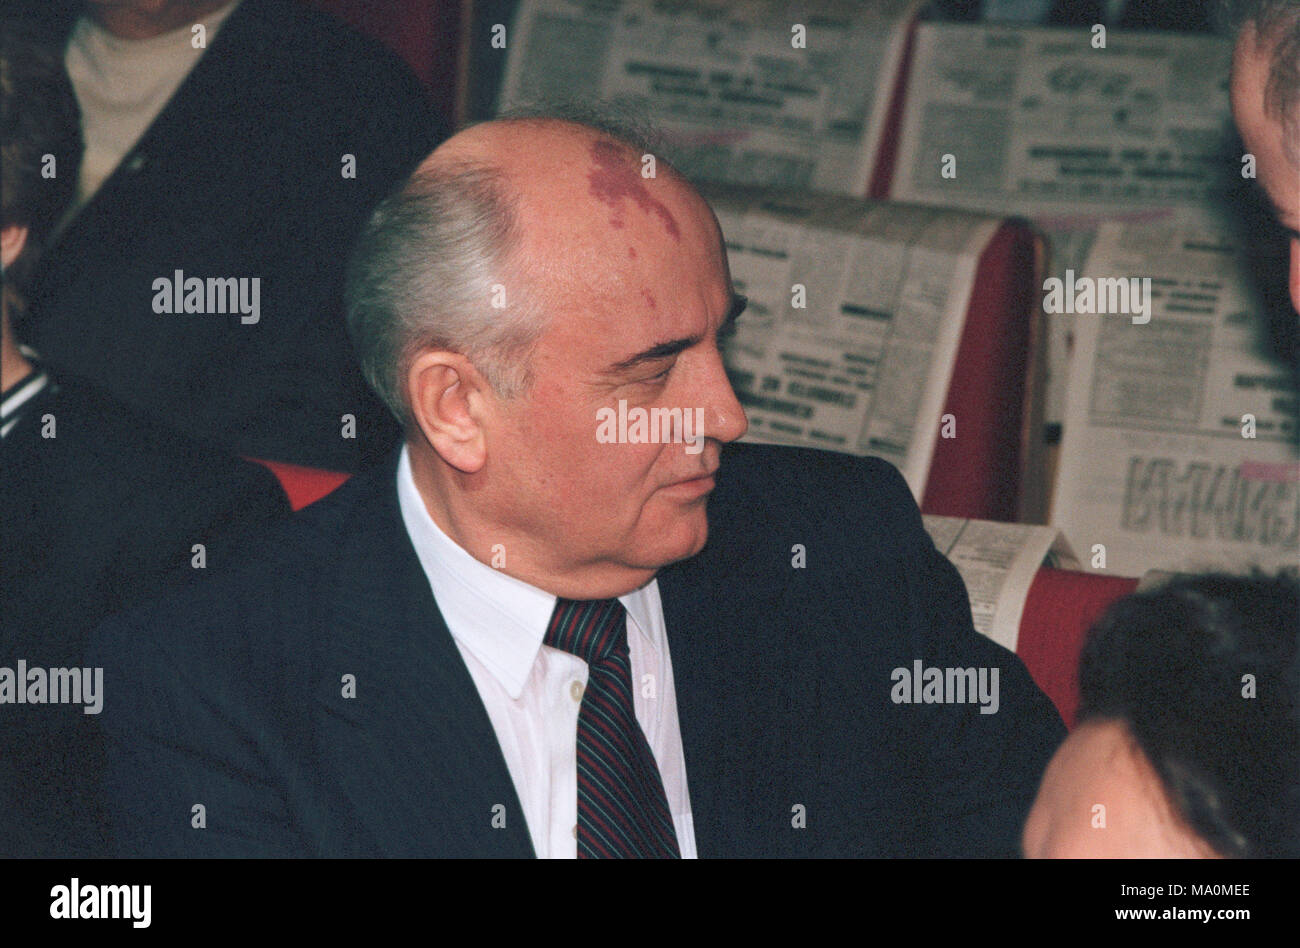 Moscow, Russia - February 29, 1992: Former soviet president Mikhail Sergeevich Gorbachev at anniversary party of Nezavisimaya gazeta newspaper - Stock Image